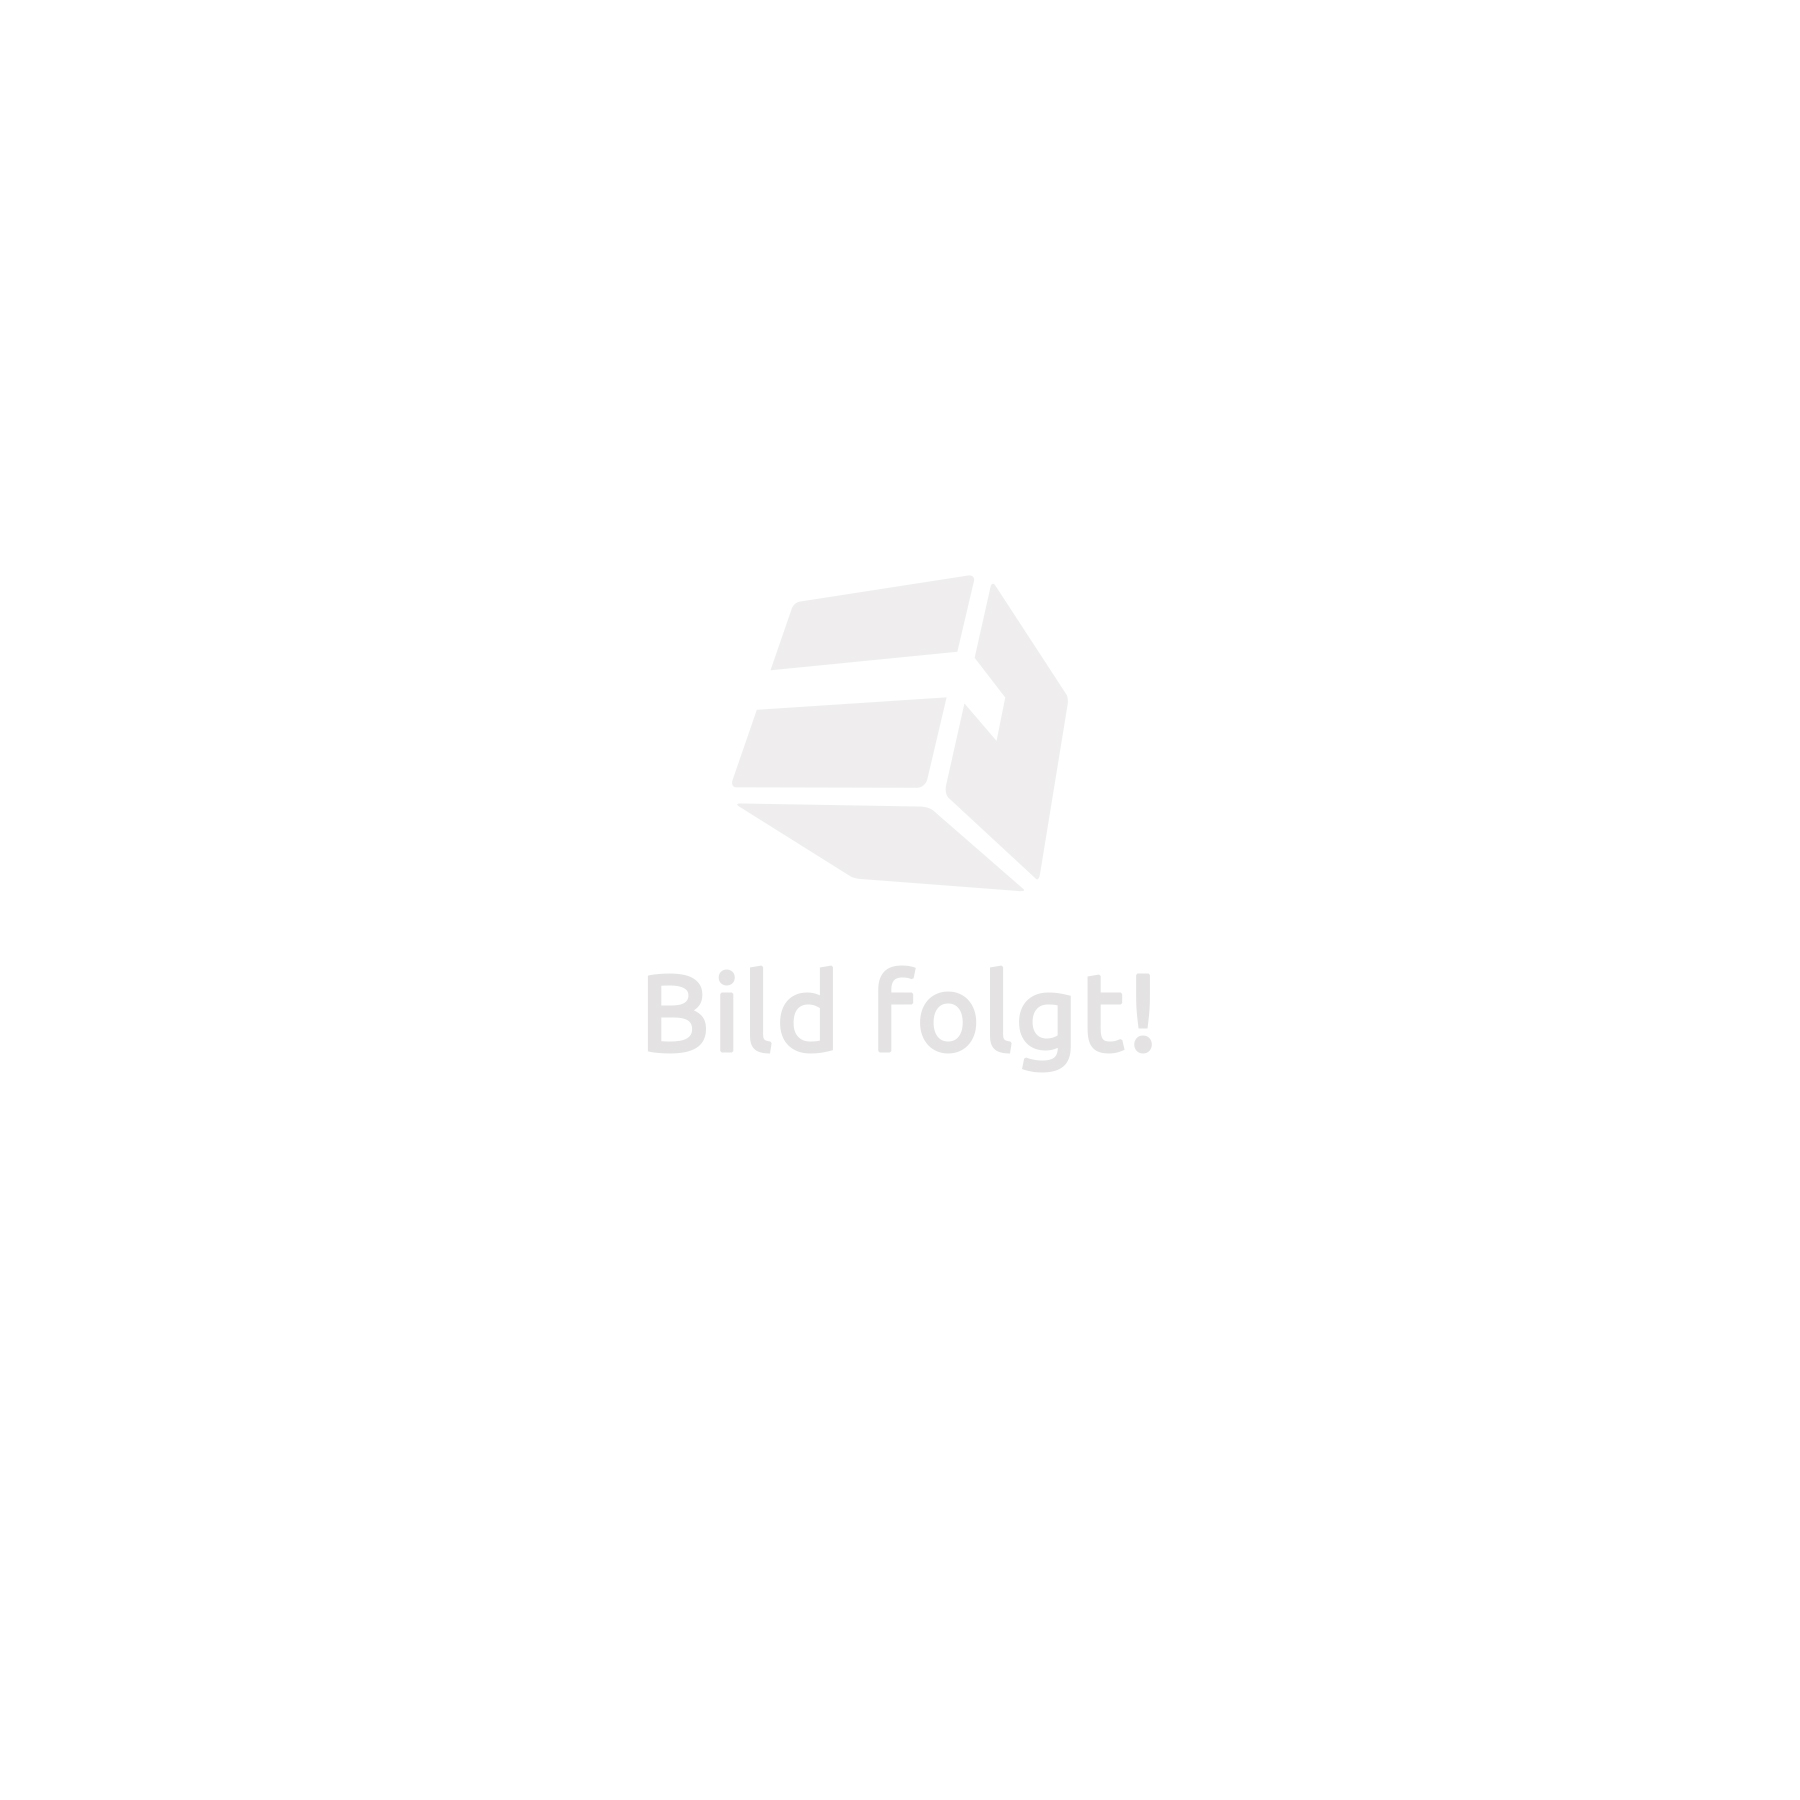 Metal Bed Frame 'Art' with slatted base white 200 x 140 cm